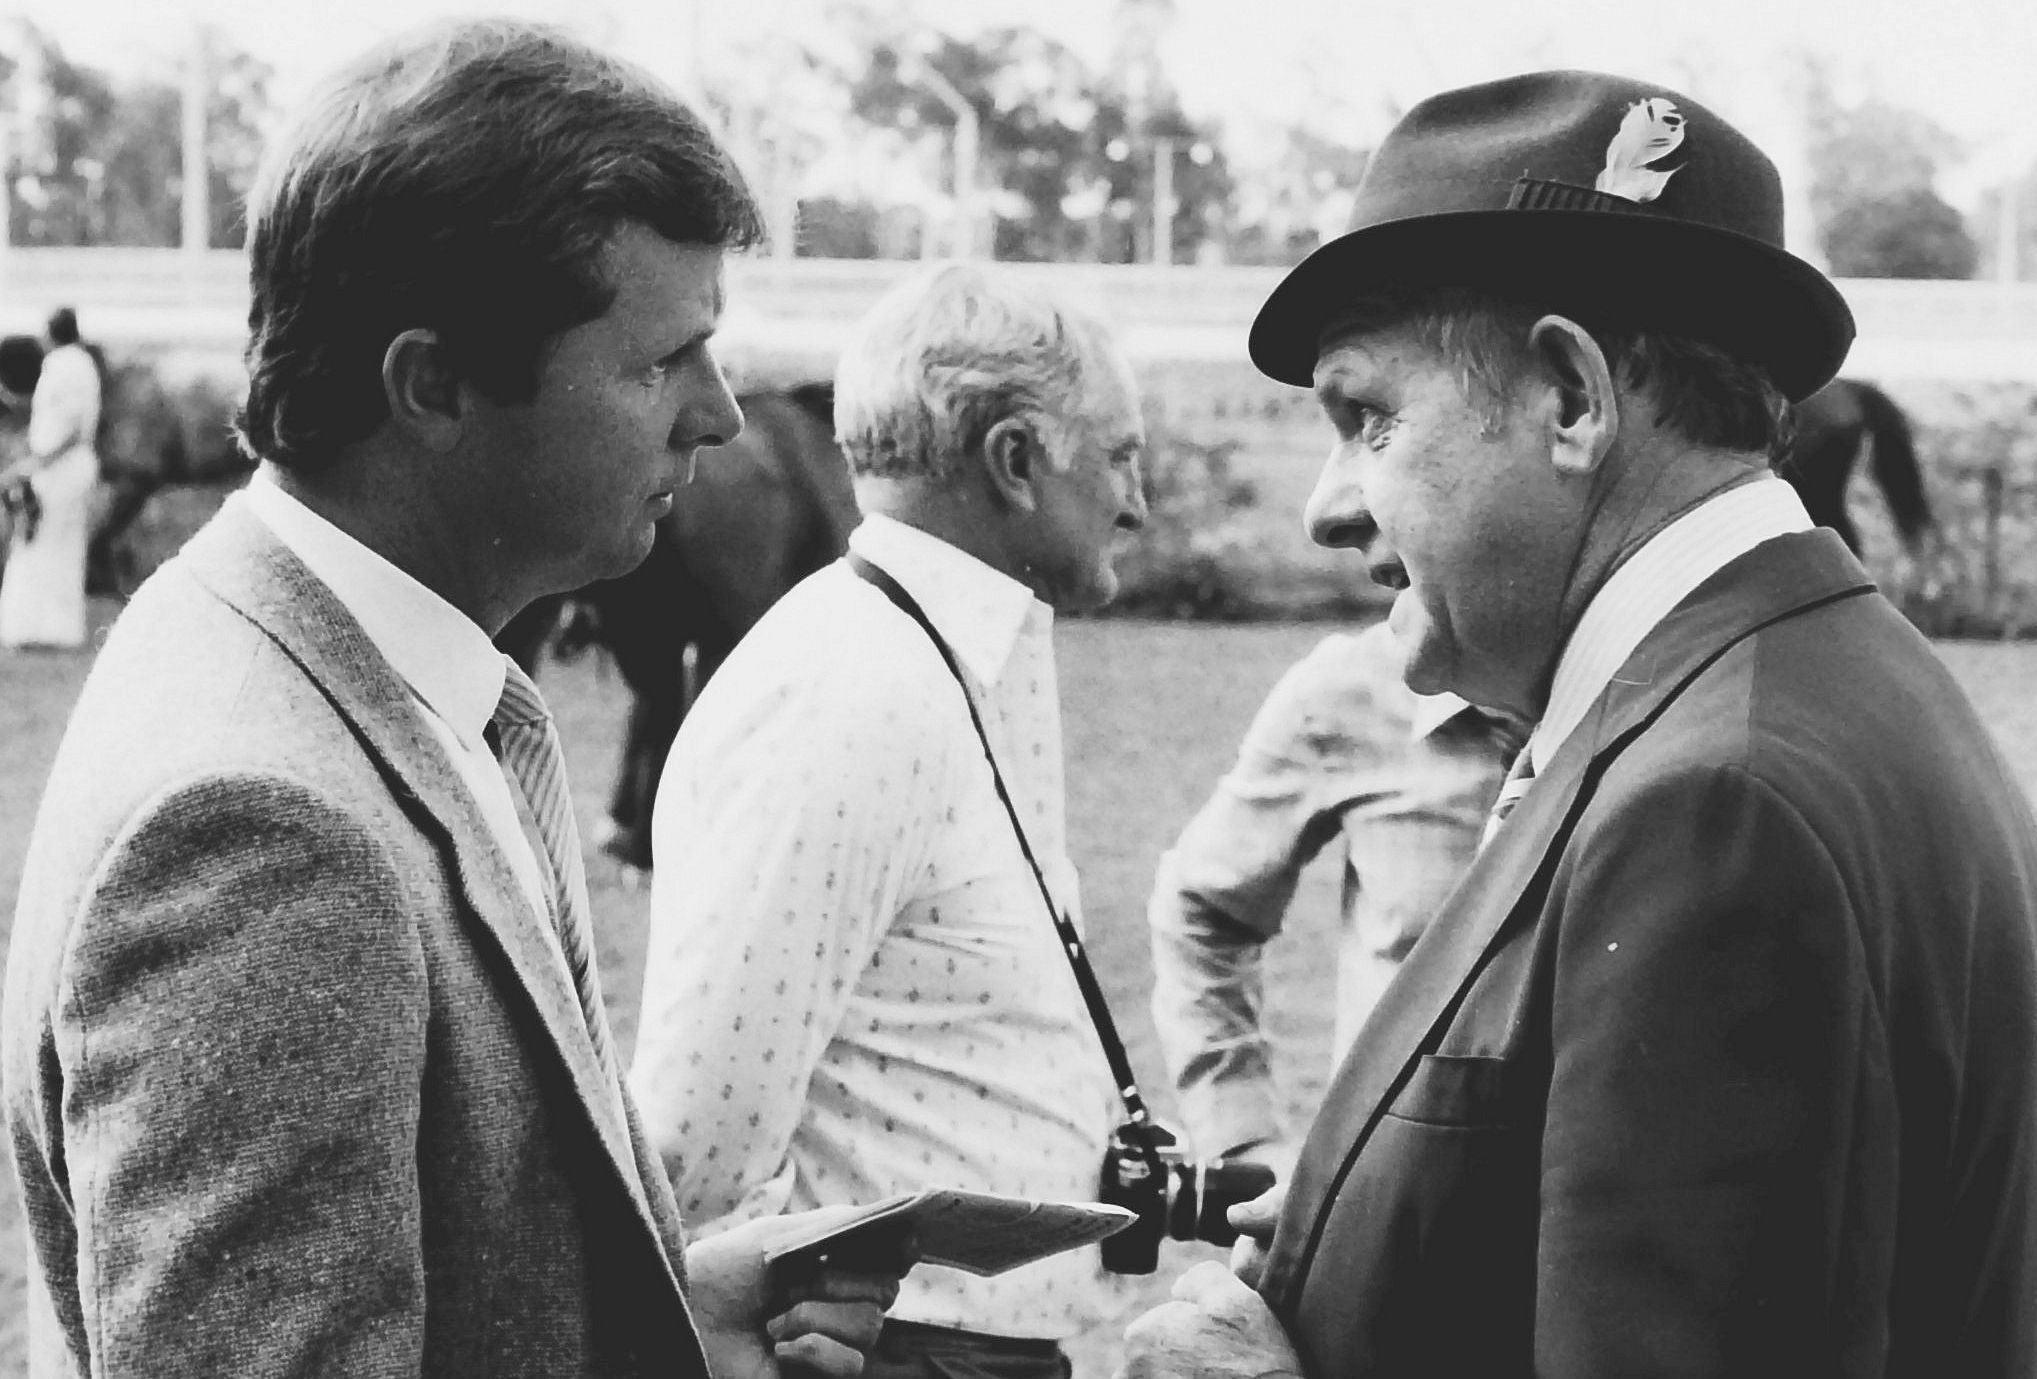 Alan Welburn with Clem Jackson in 1984 at Callaghan Park.